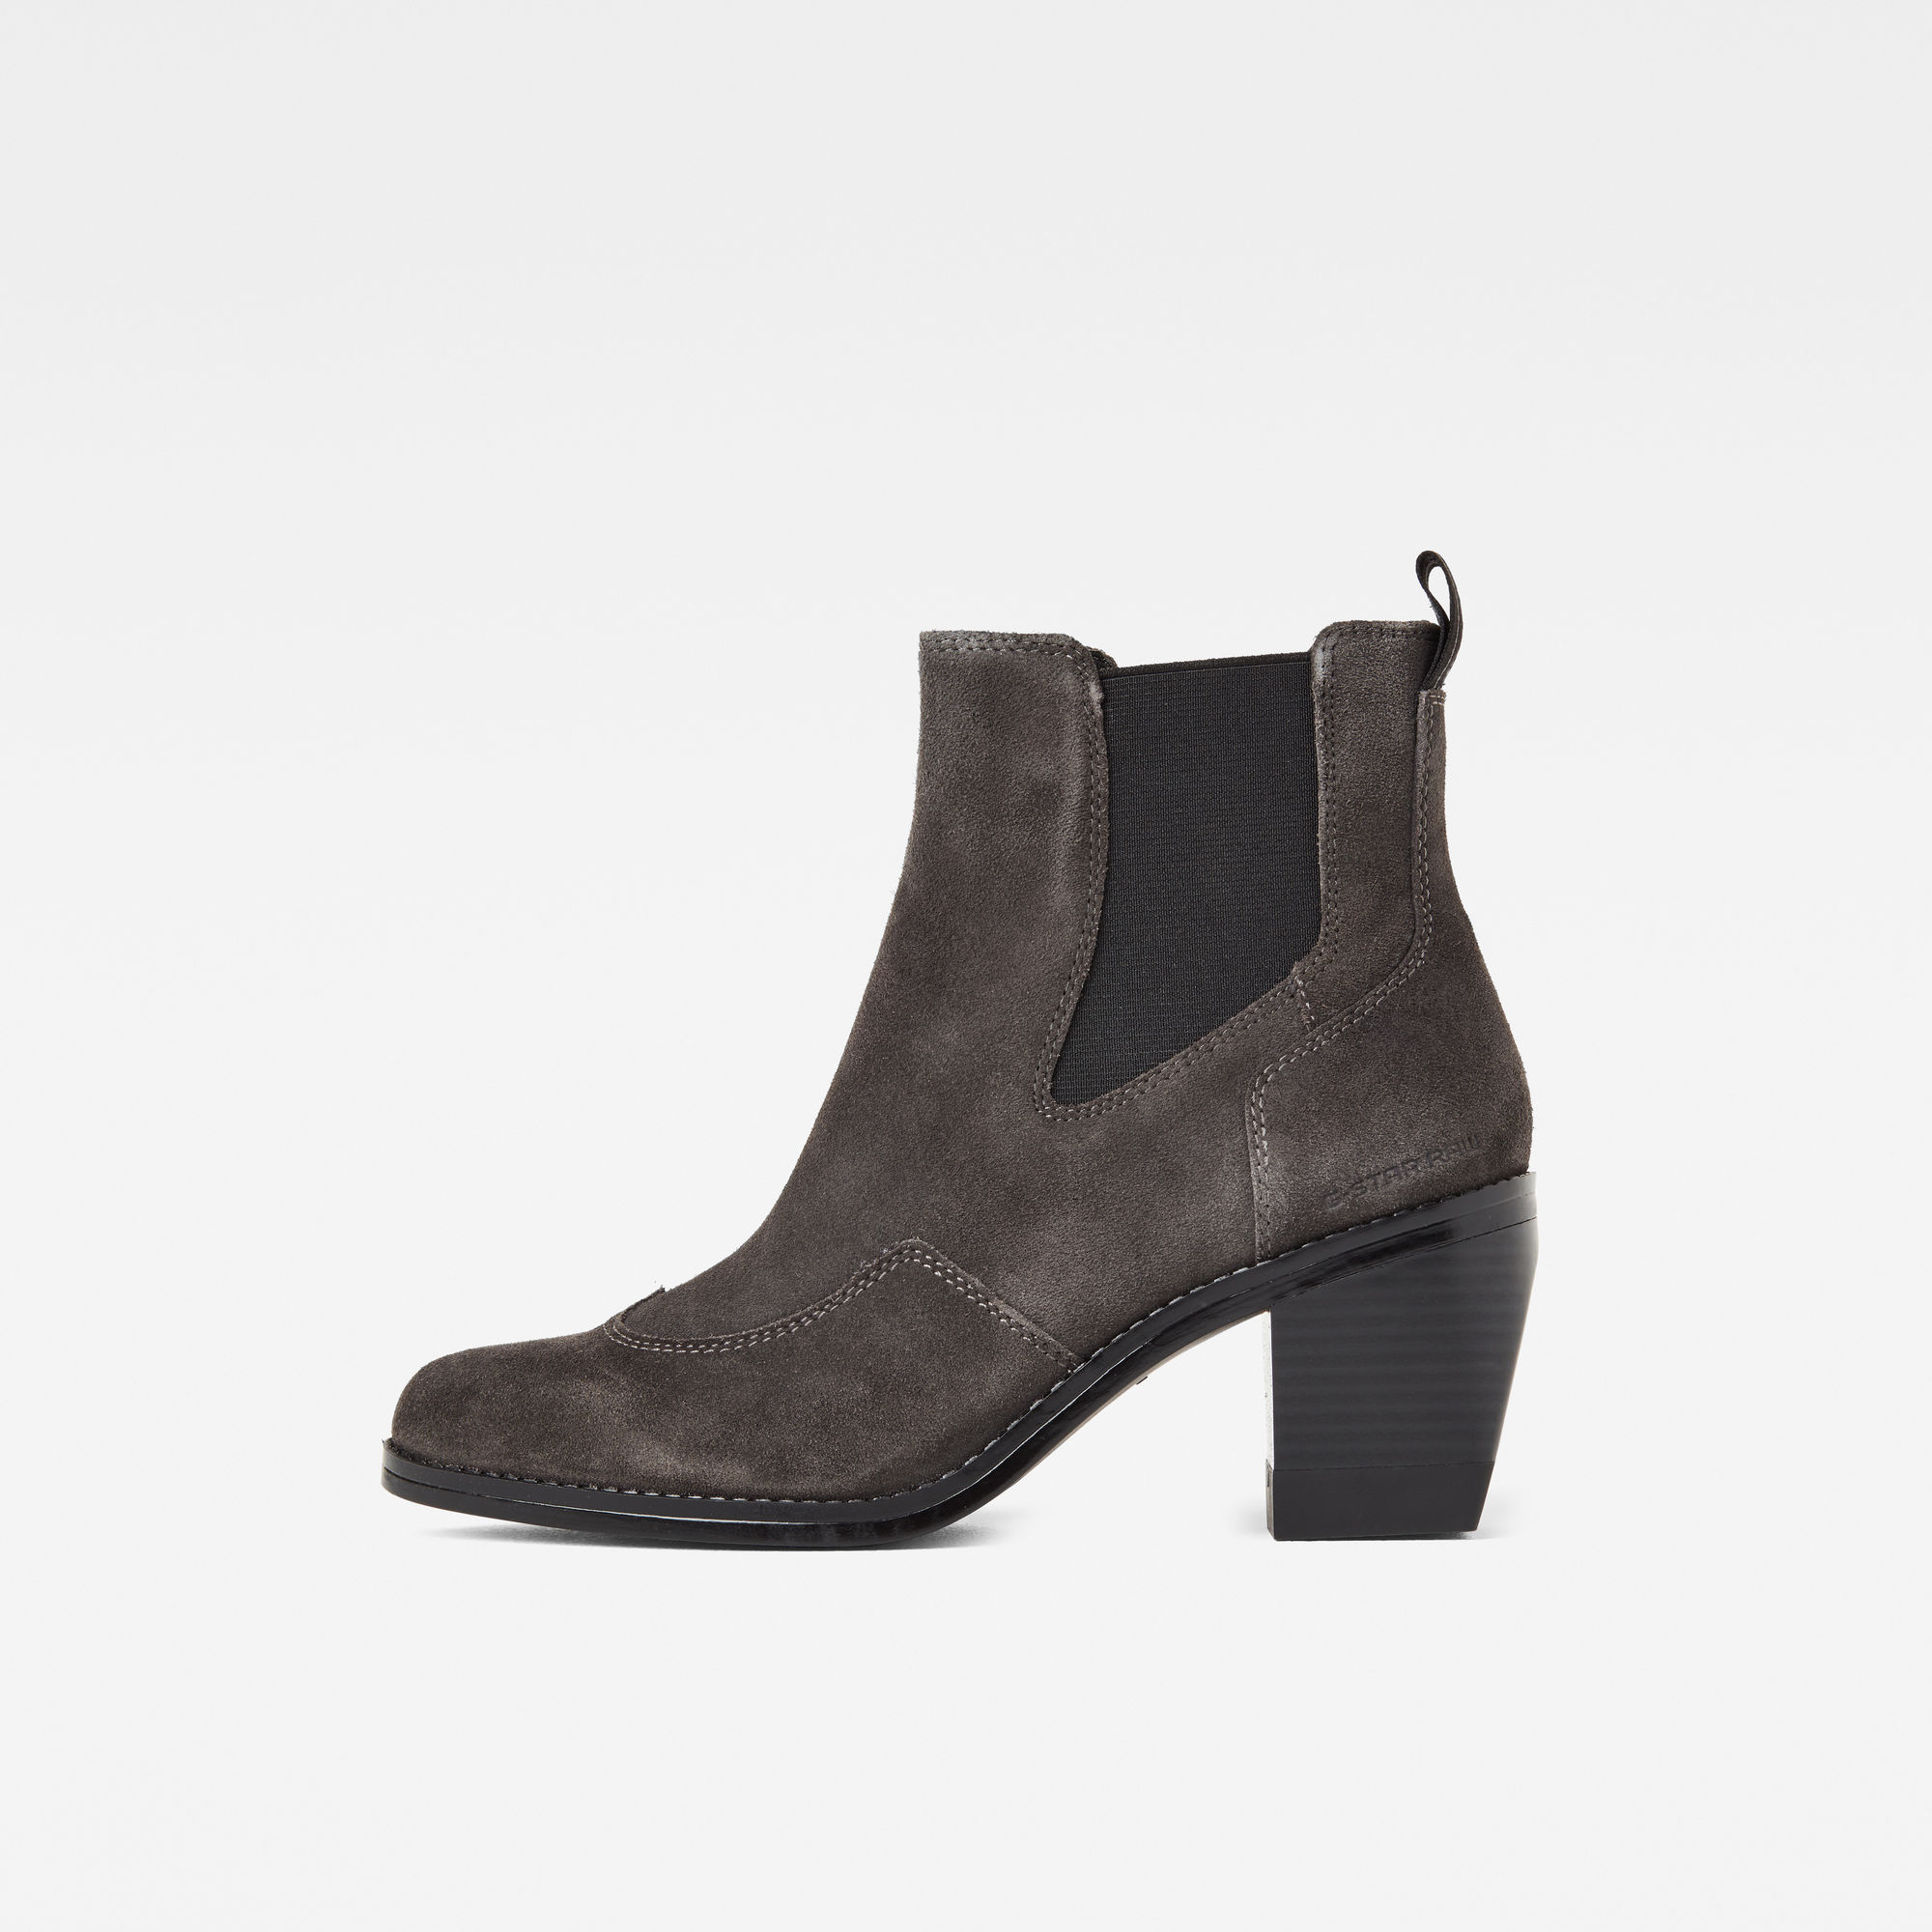 G-Star RAW Dames Tacoma Boots Anders